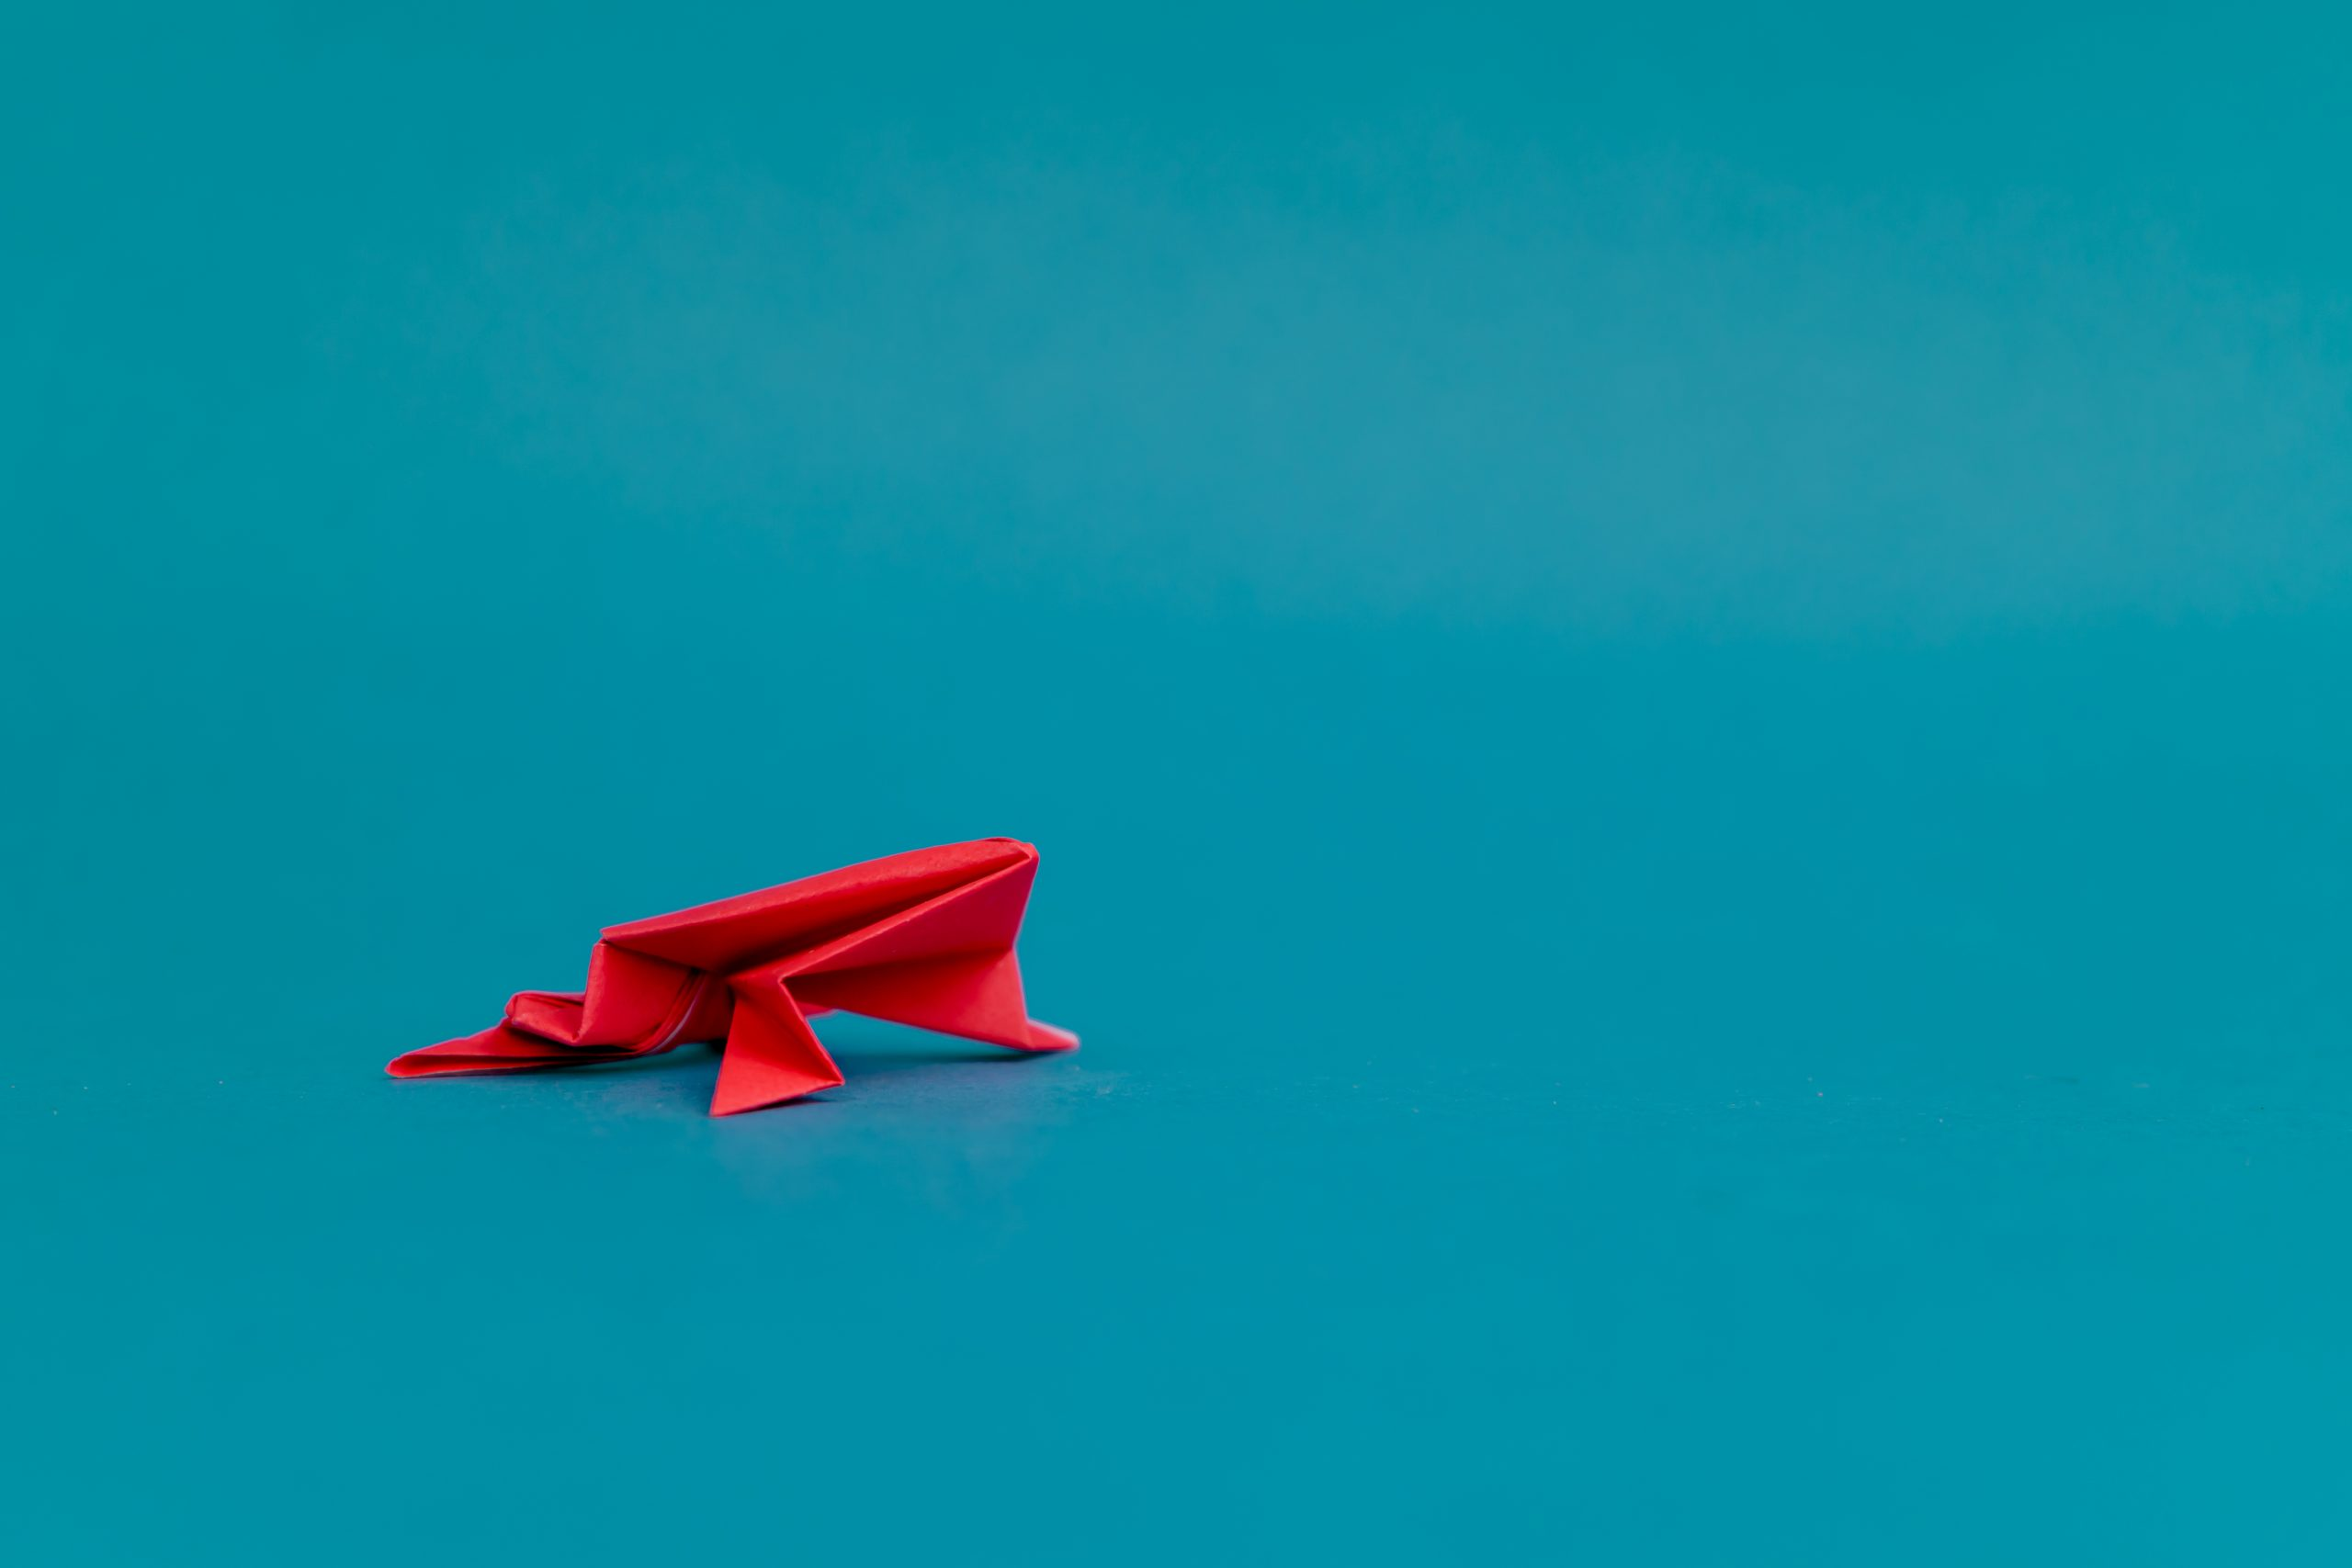 Red frog origami